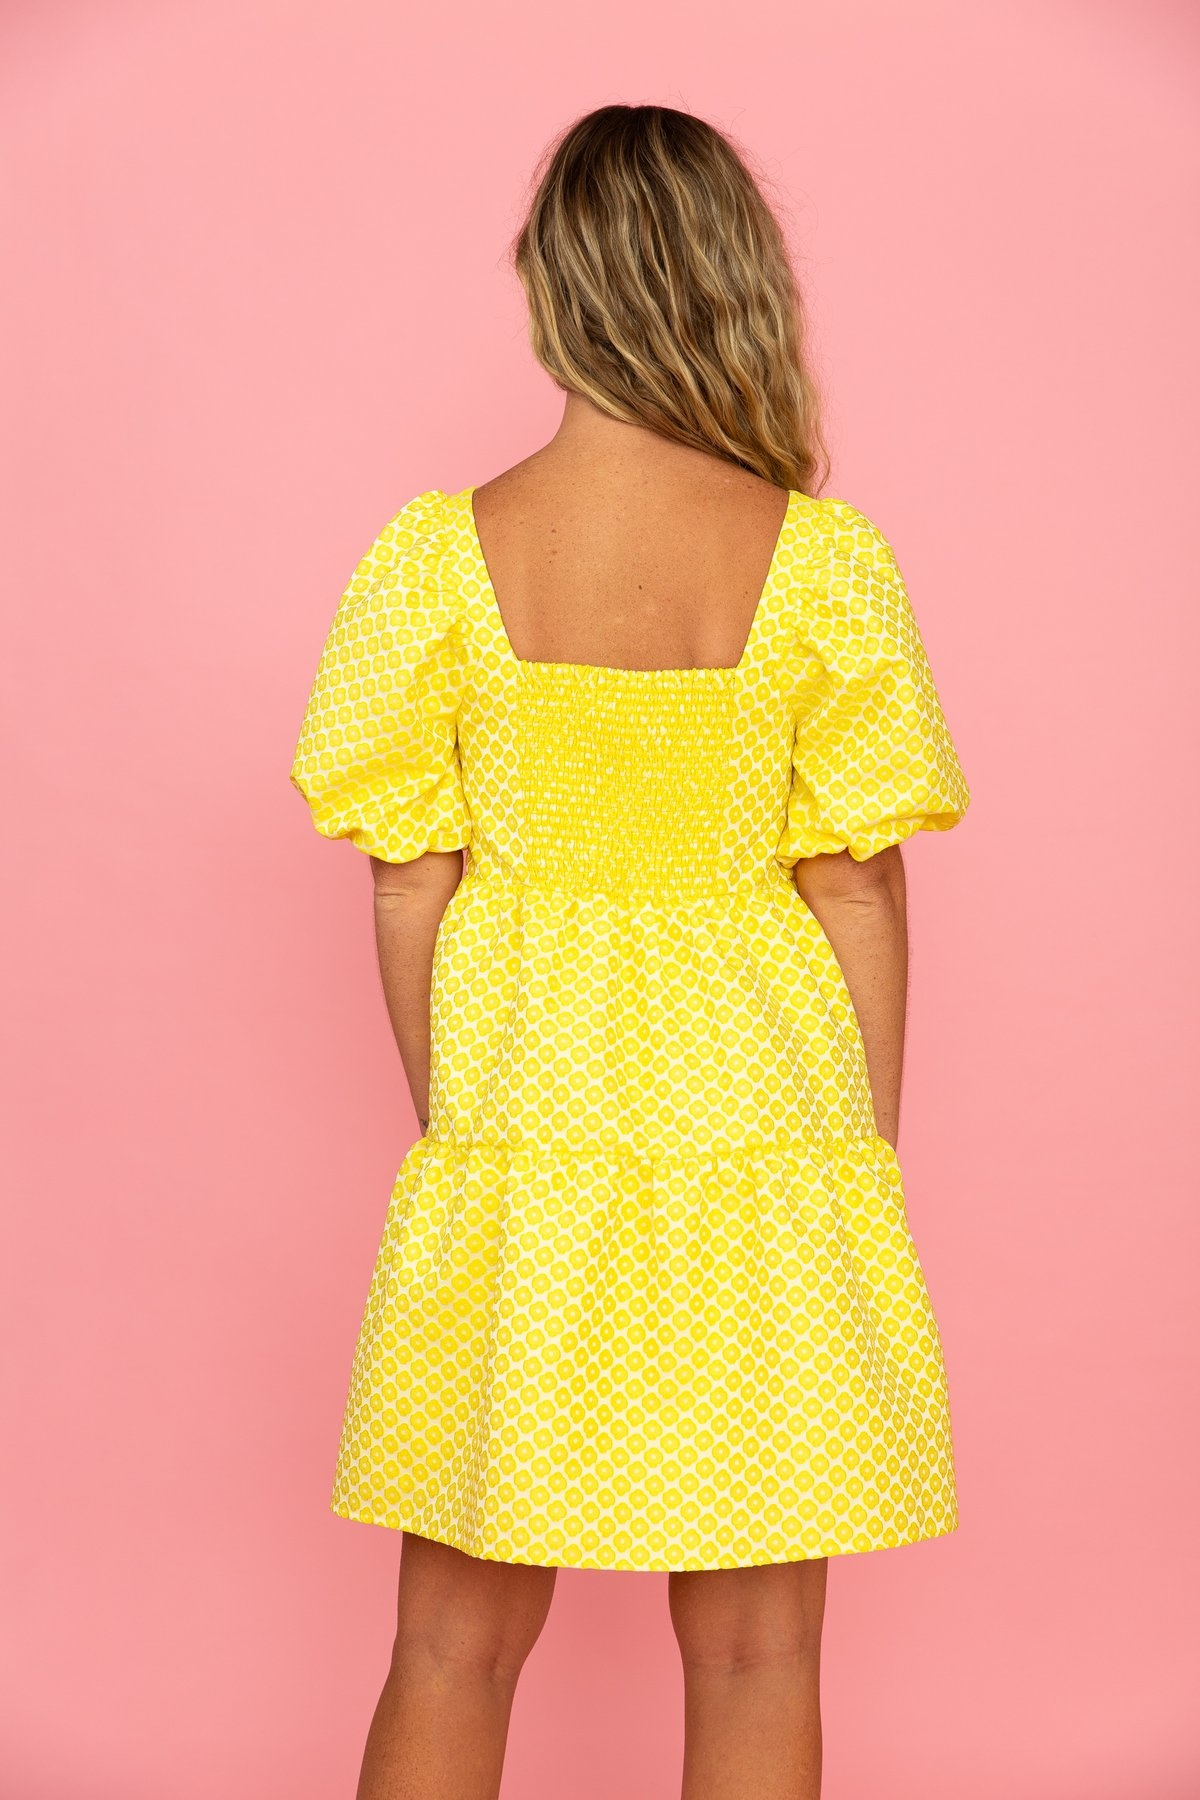 Crosby By Mollie Burch Saylor Dress Buttercup